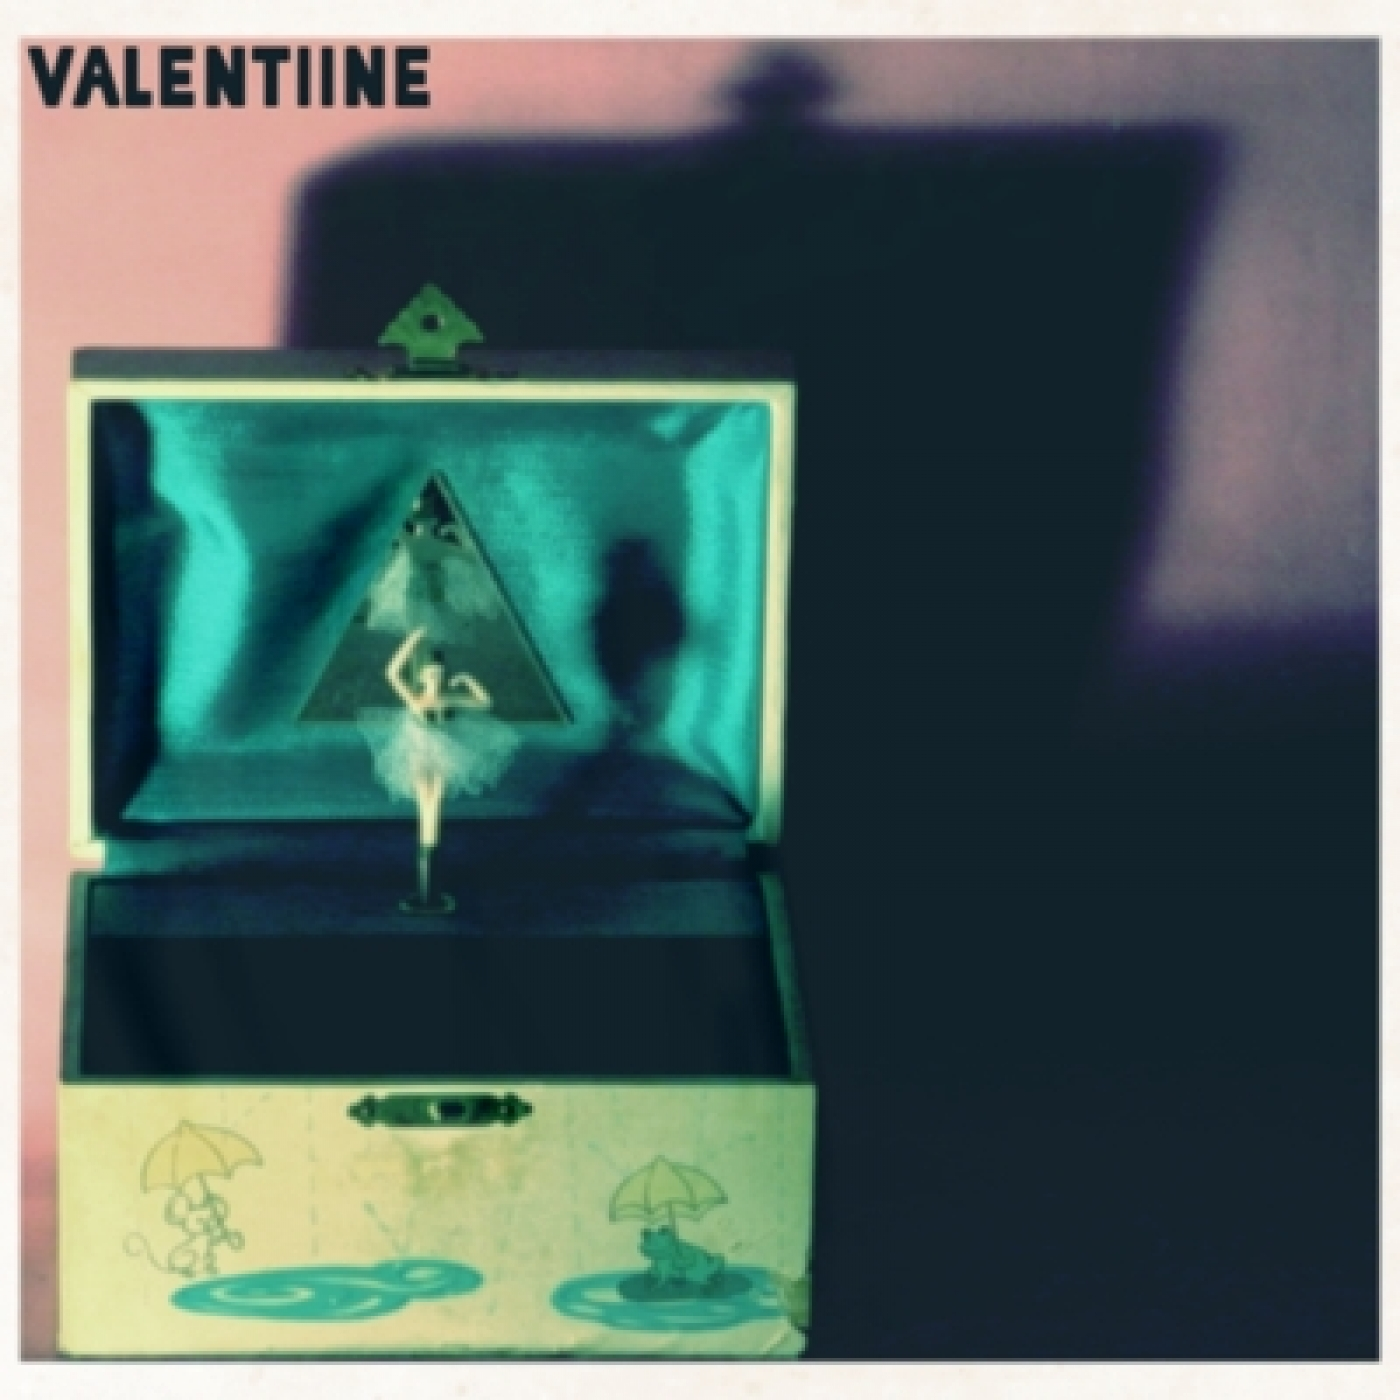 resized valentiine album cover